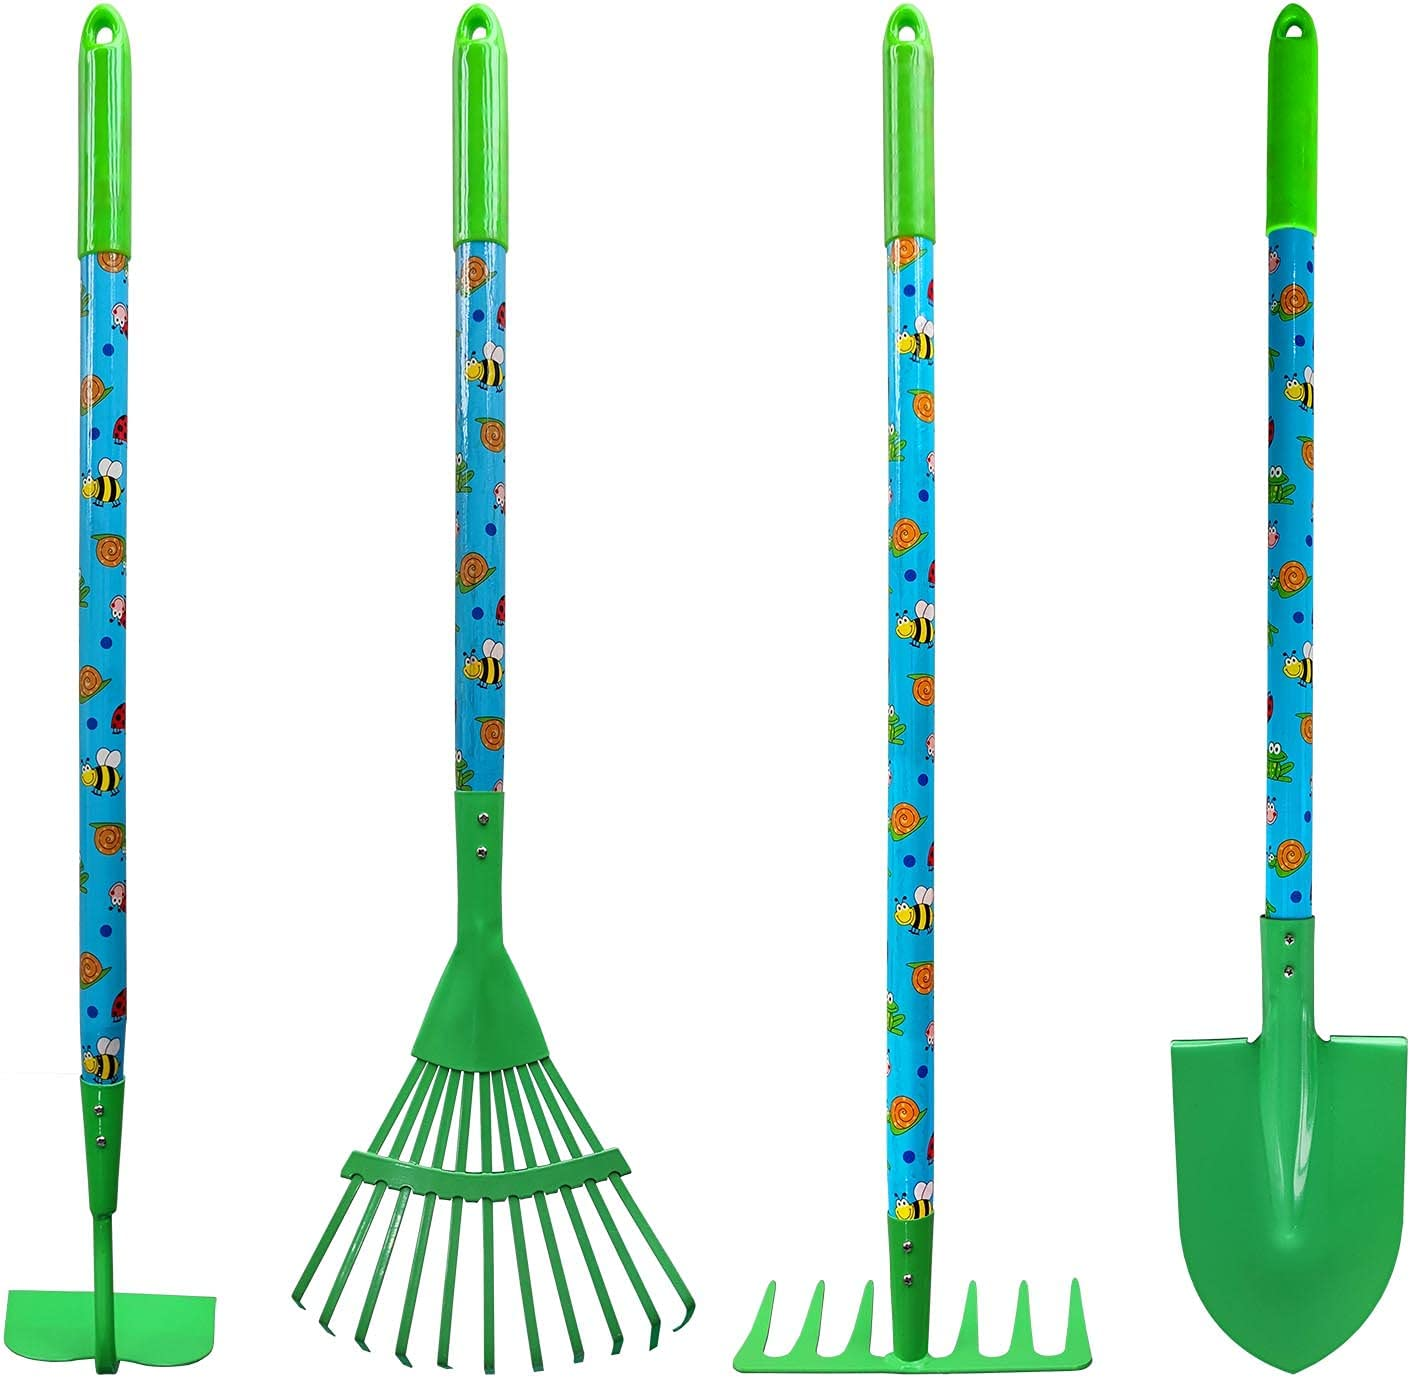 MTB Supply Kid's Garden Tool Set with Child Safe Shovel, Rake, Hoe and Leaf Rake– 4 Piece Gardening Kit with Green Head and Long Wood Handles…